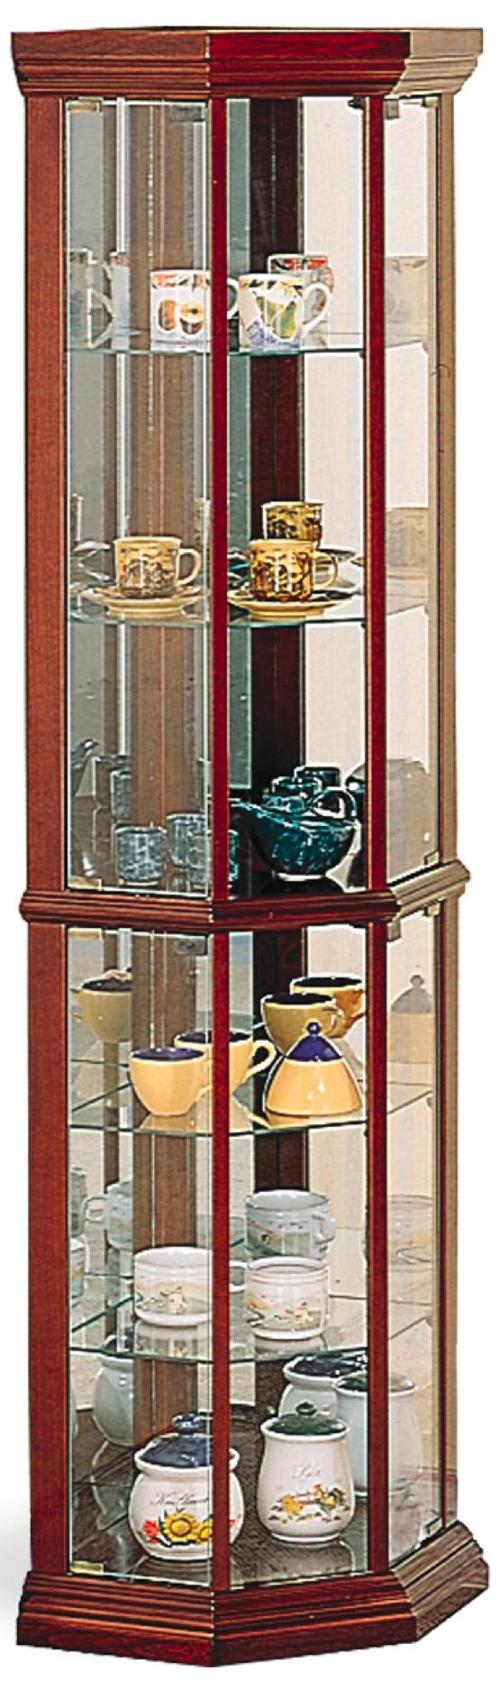 Popular Curio Cabinets Solid Wood Cherry Glass Curio Cabinet Shelves Coaster Curio Cabinets Solid Wood Cherry Glass Curio Cabinet Solid Wood Cabinets Paramus Nj Solid Wood Cabinets Mechanicsburg houzz 01 Solid Wood Cabinets